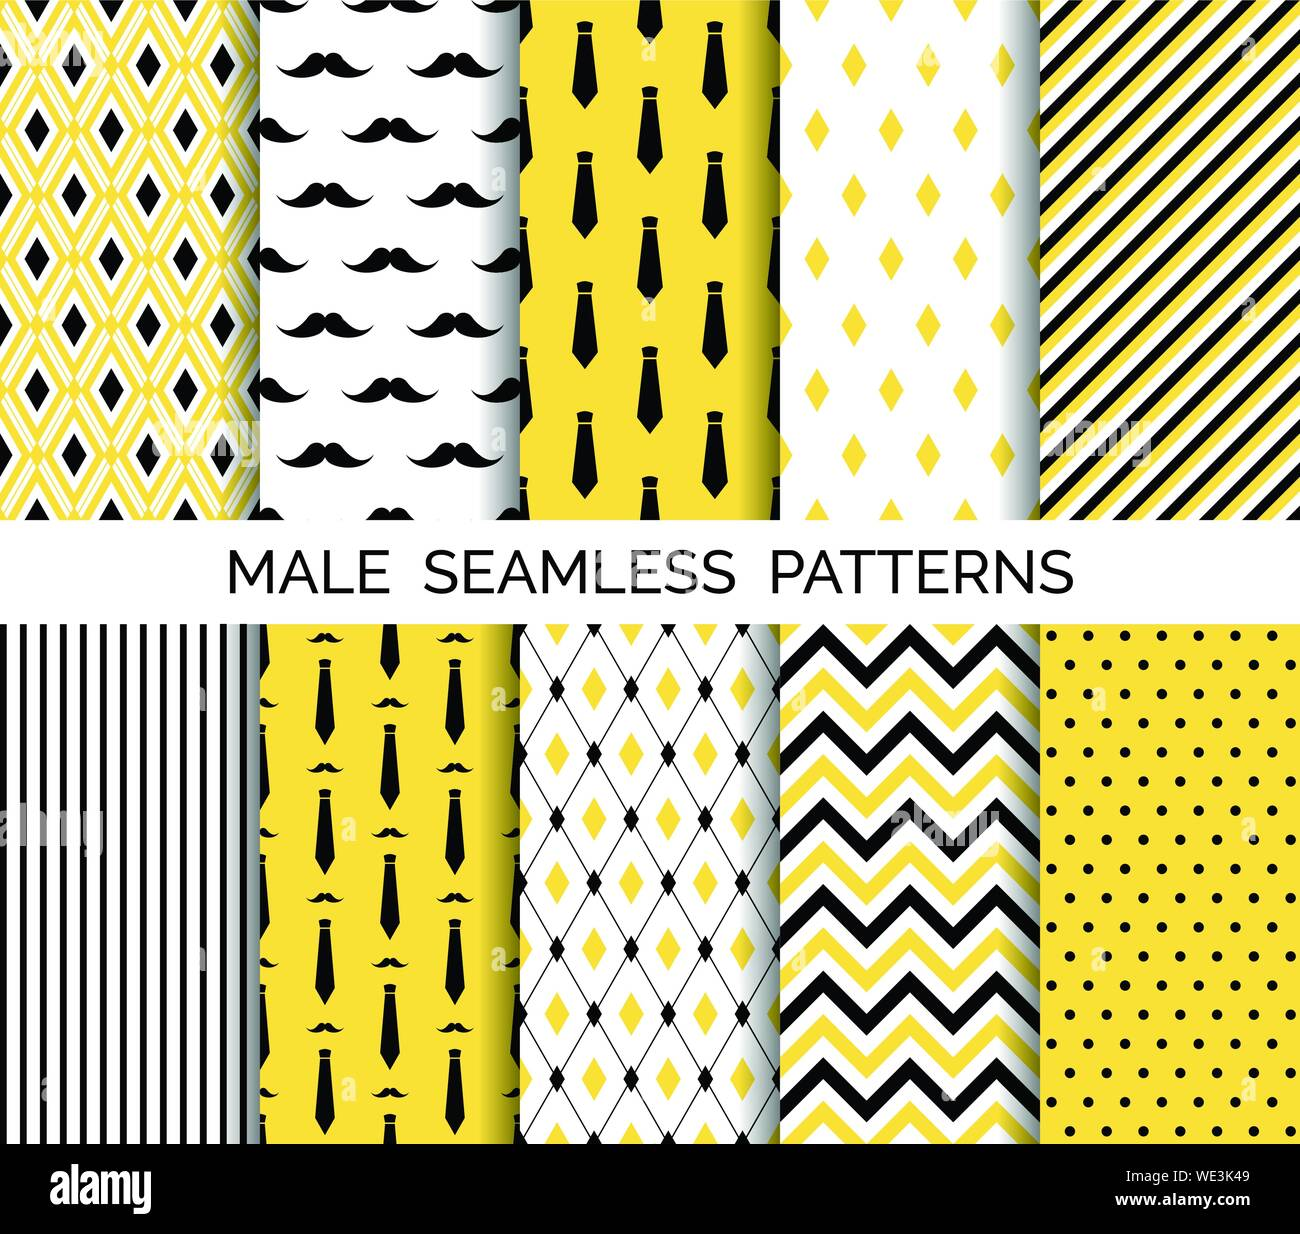 image about Printable Paper Patterns titled Fixed of printable vector gentleman seamless models. Wrapping